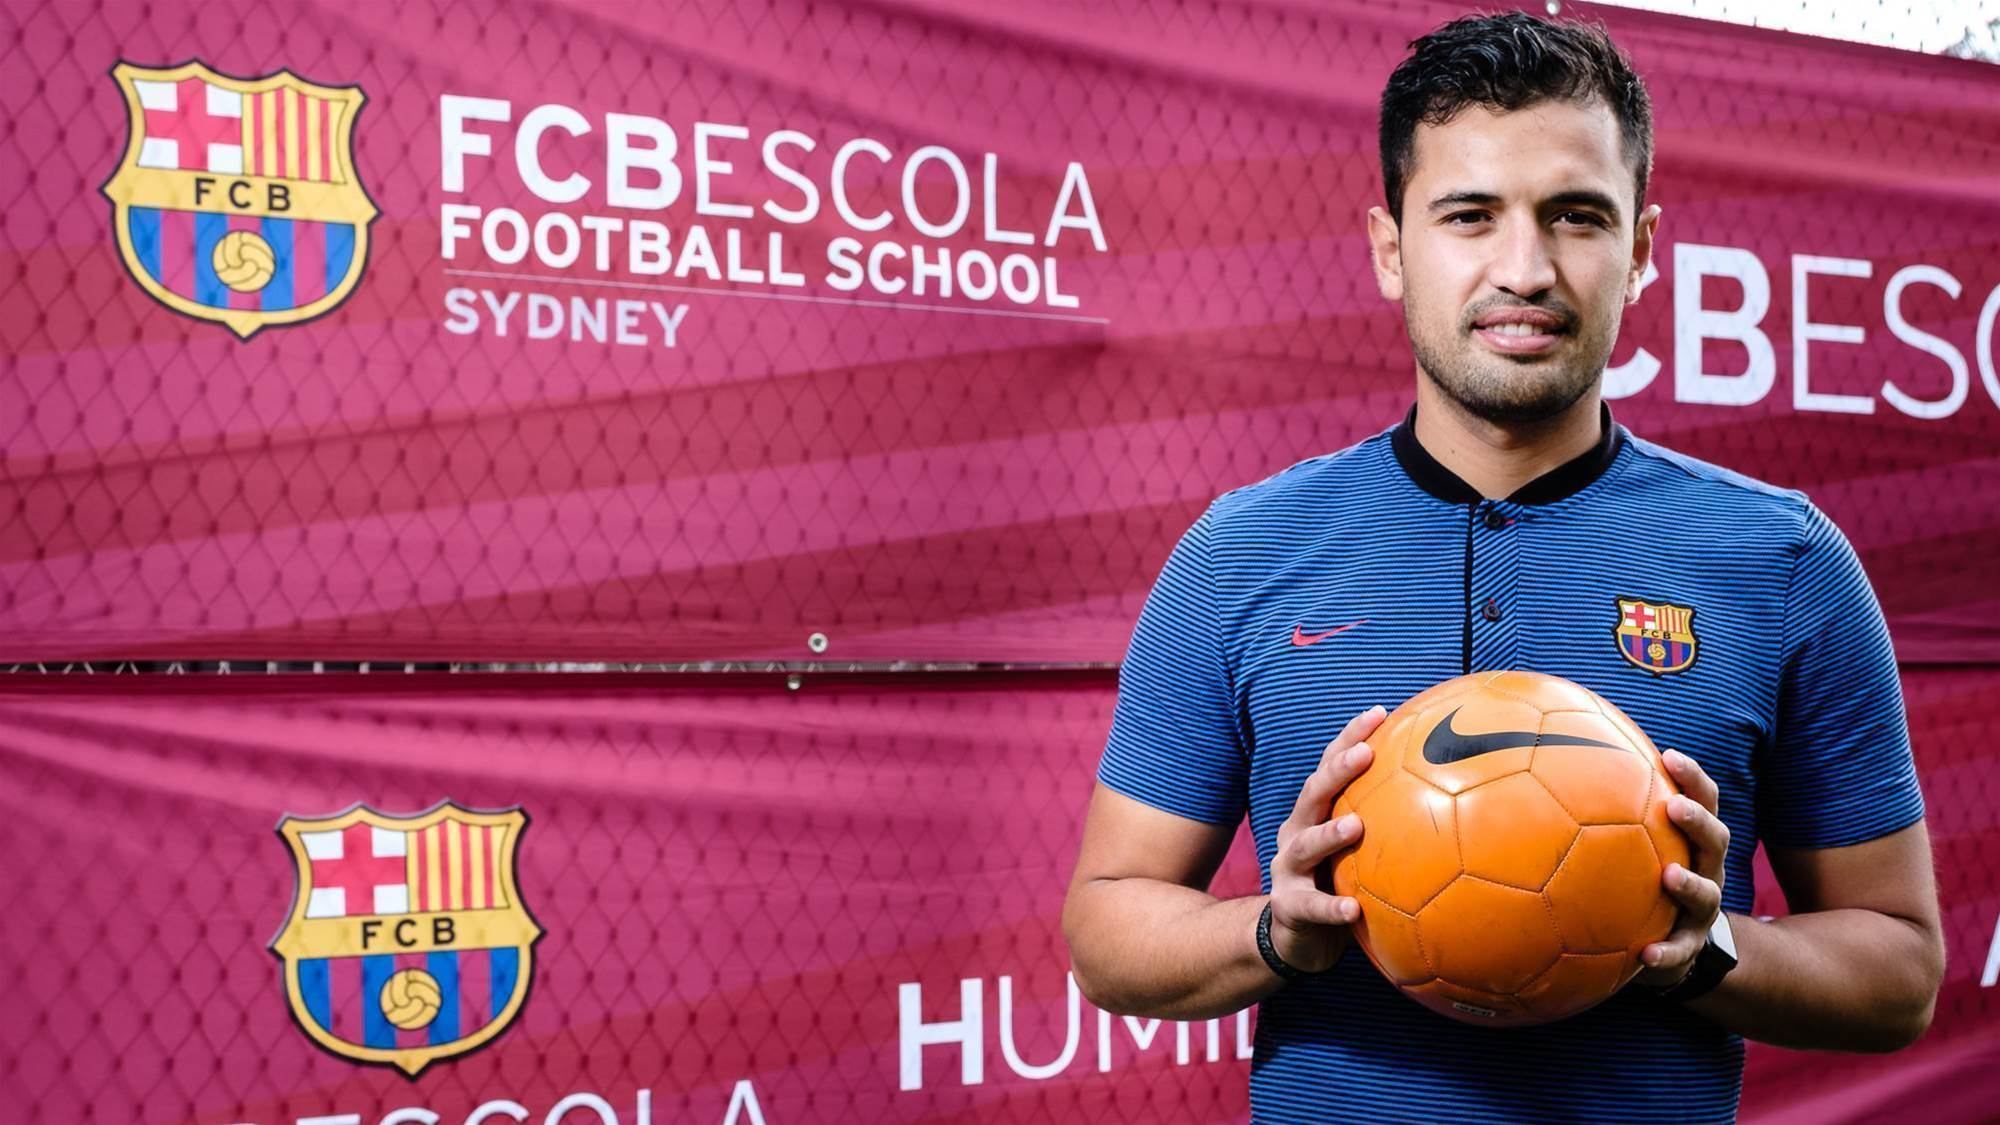 FCBEscola: How Aussie kids can play like Messi